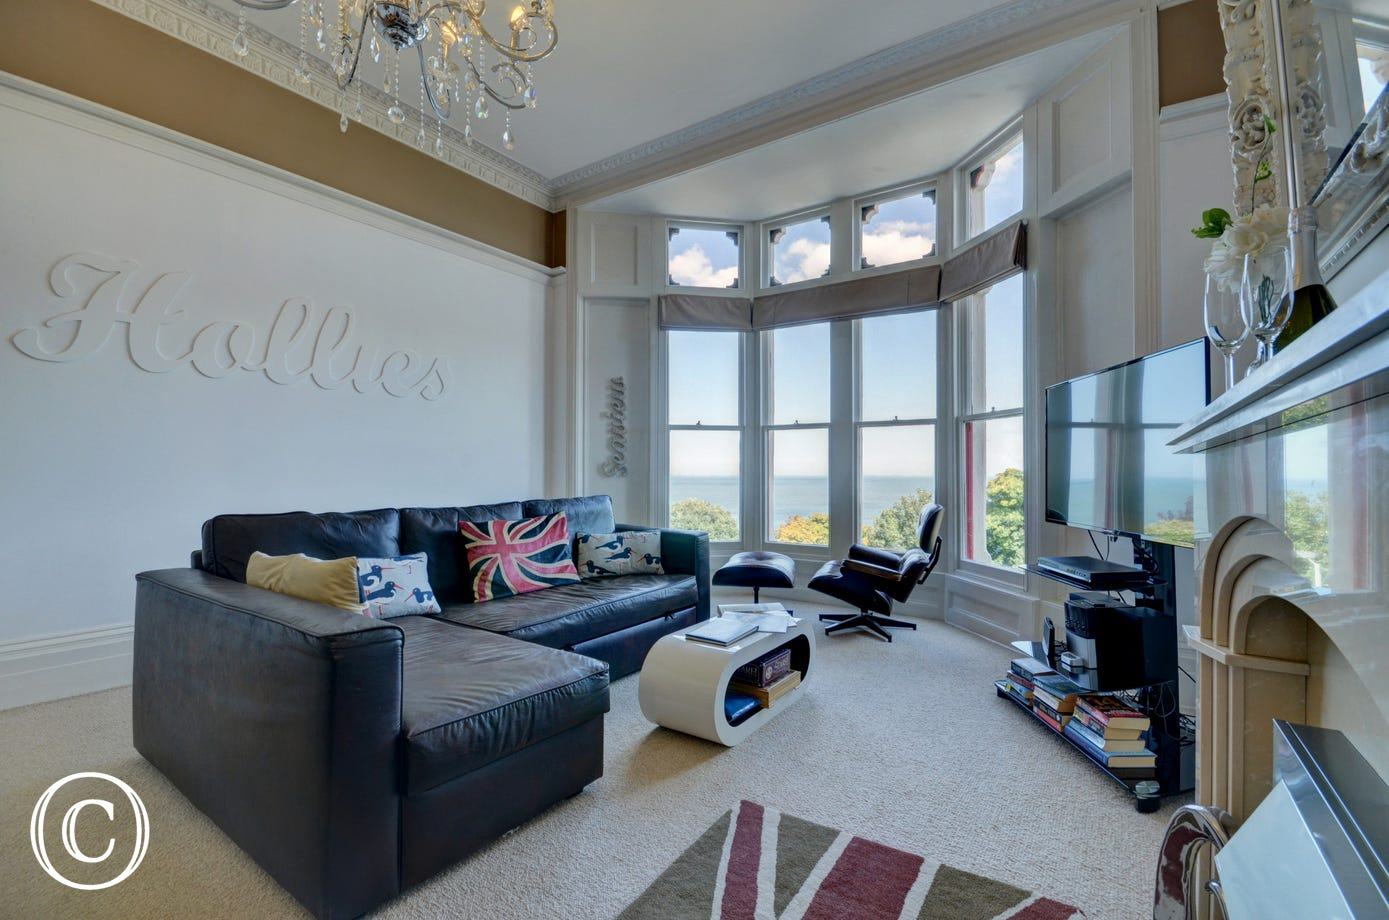 The spacious living/dining room with attractive fireplace and excellent sea views has a large comfy leather sofa